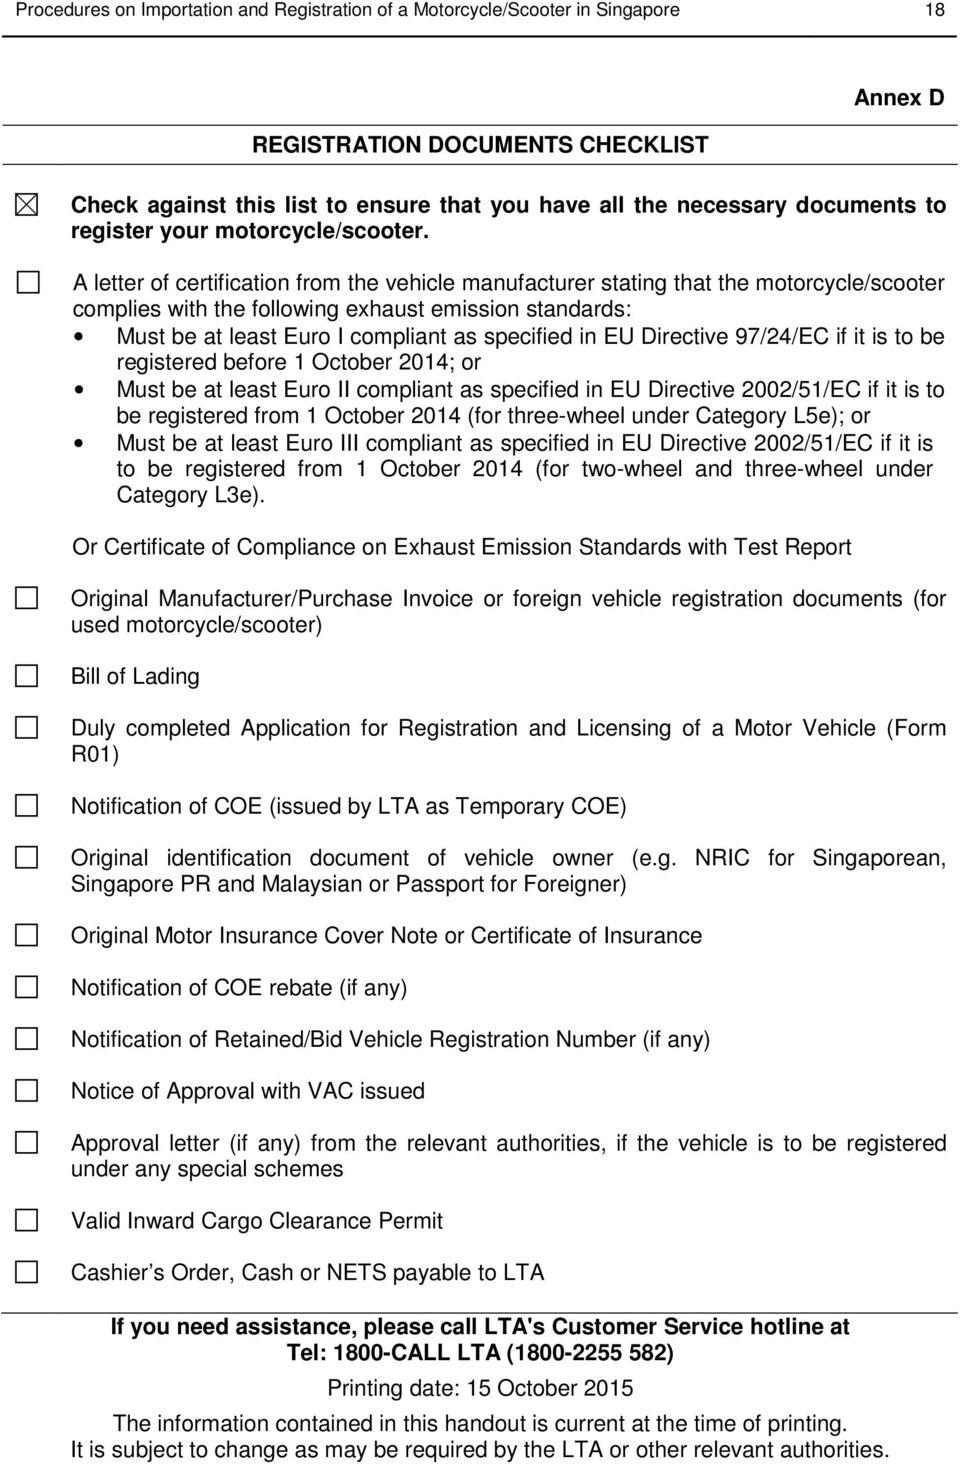 PROCEDURES ON IMPORTATION AND REGISTRATION OF A MOTORCYCLE/ SCOOTER